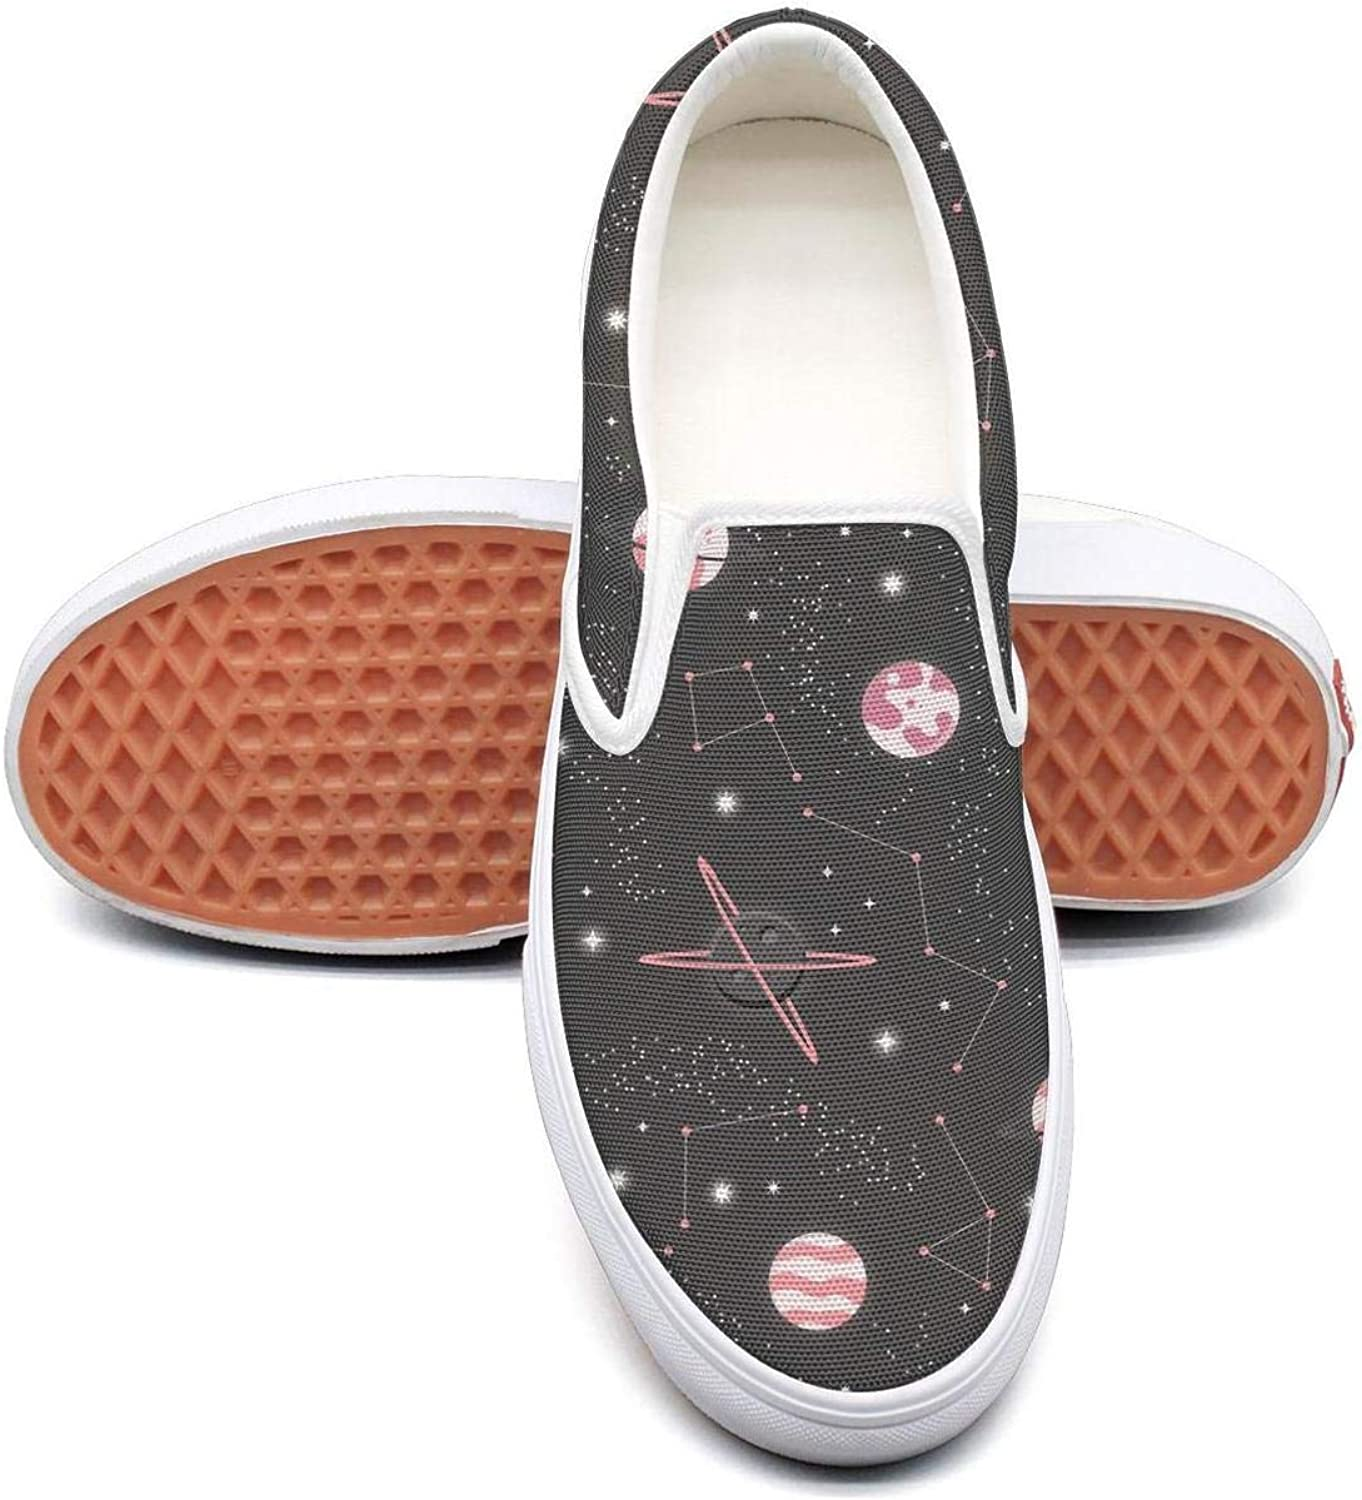 Feenfling Universe with Planets Womens Casual Slip on Low Top Canvas Tennis shoes